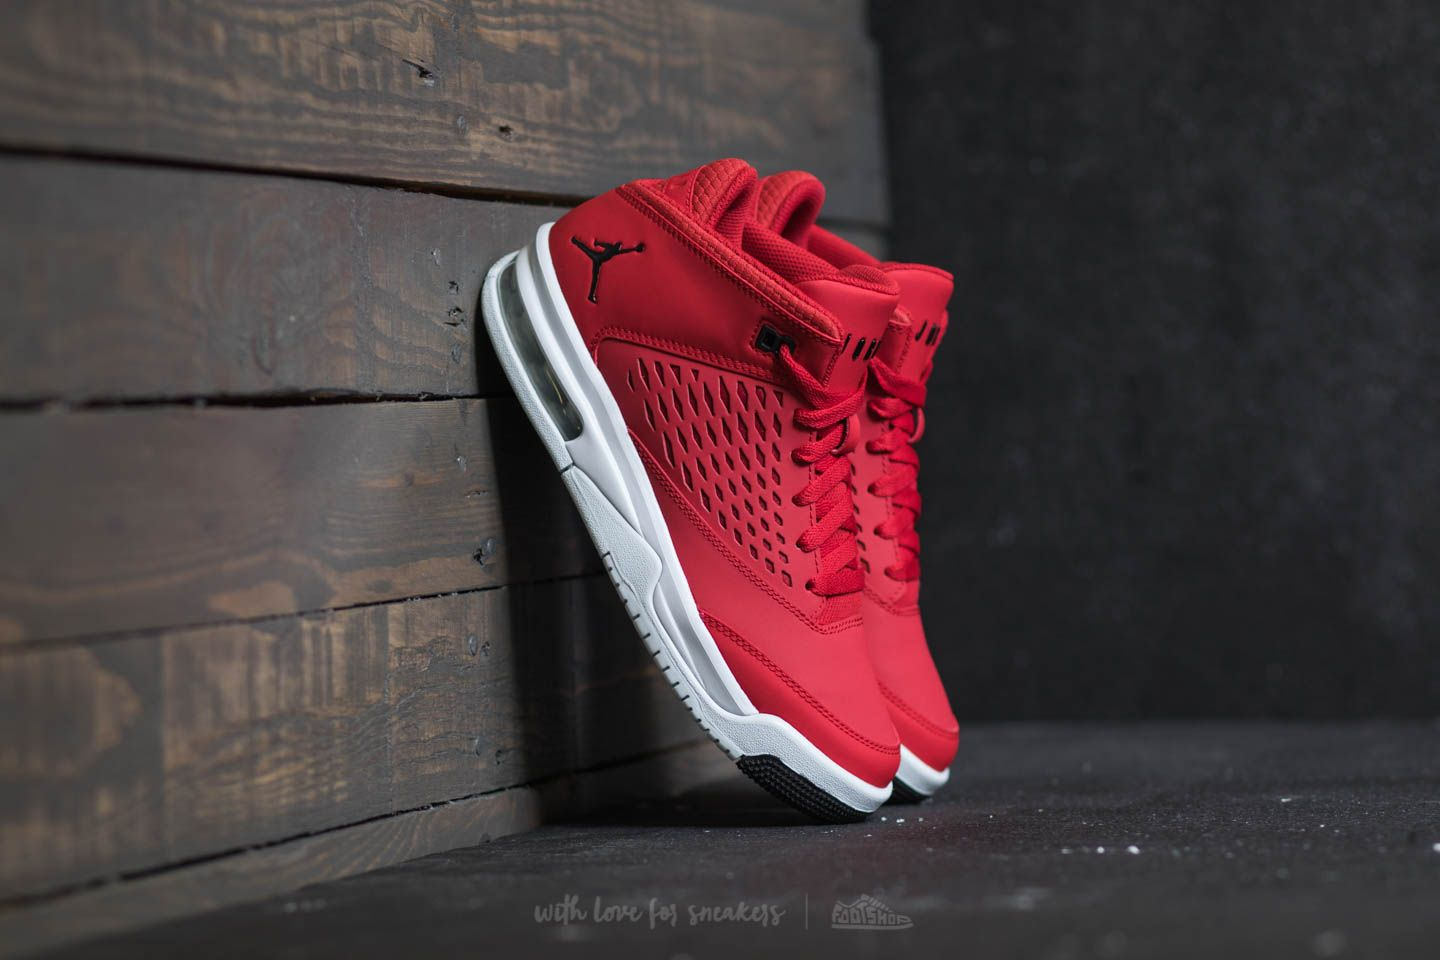 timeless design 87cd2 47583 Jordan Flight Origin 4 BG. Gym Red  Black-Pure Platinum